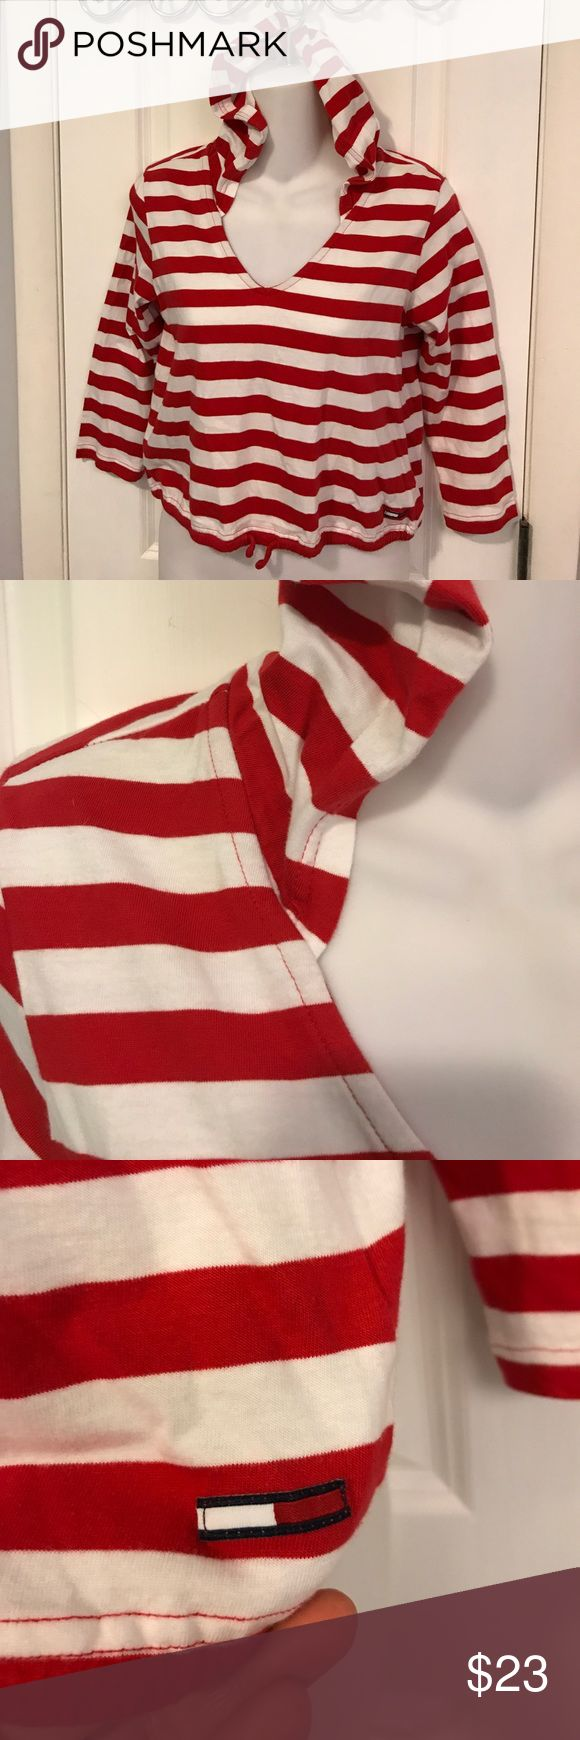 Tommy Jeans red striped hoodie top, Medium Red and white stripes are SO perfect!  This cute top has a drawstring waist, long sleeves, and a hood. You are ready for the beach or boating. Size Medium. Tommy Hilfiger Tops Tees - Short Sleeve